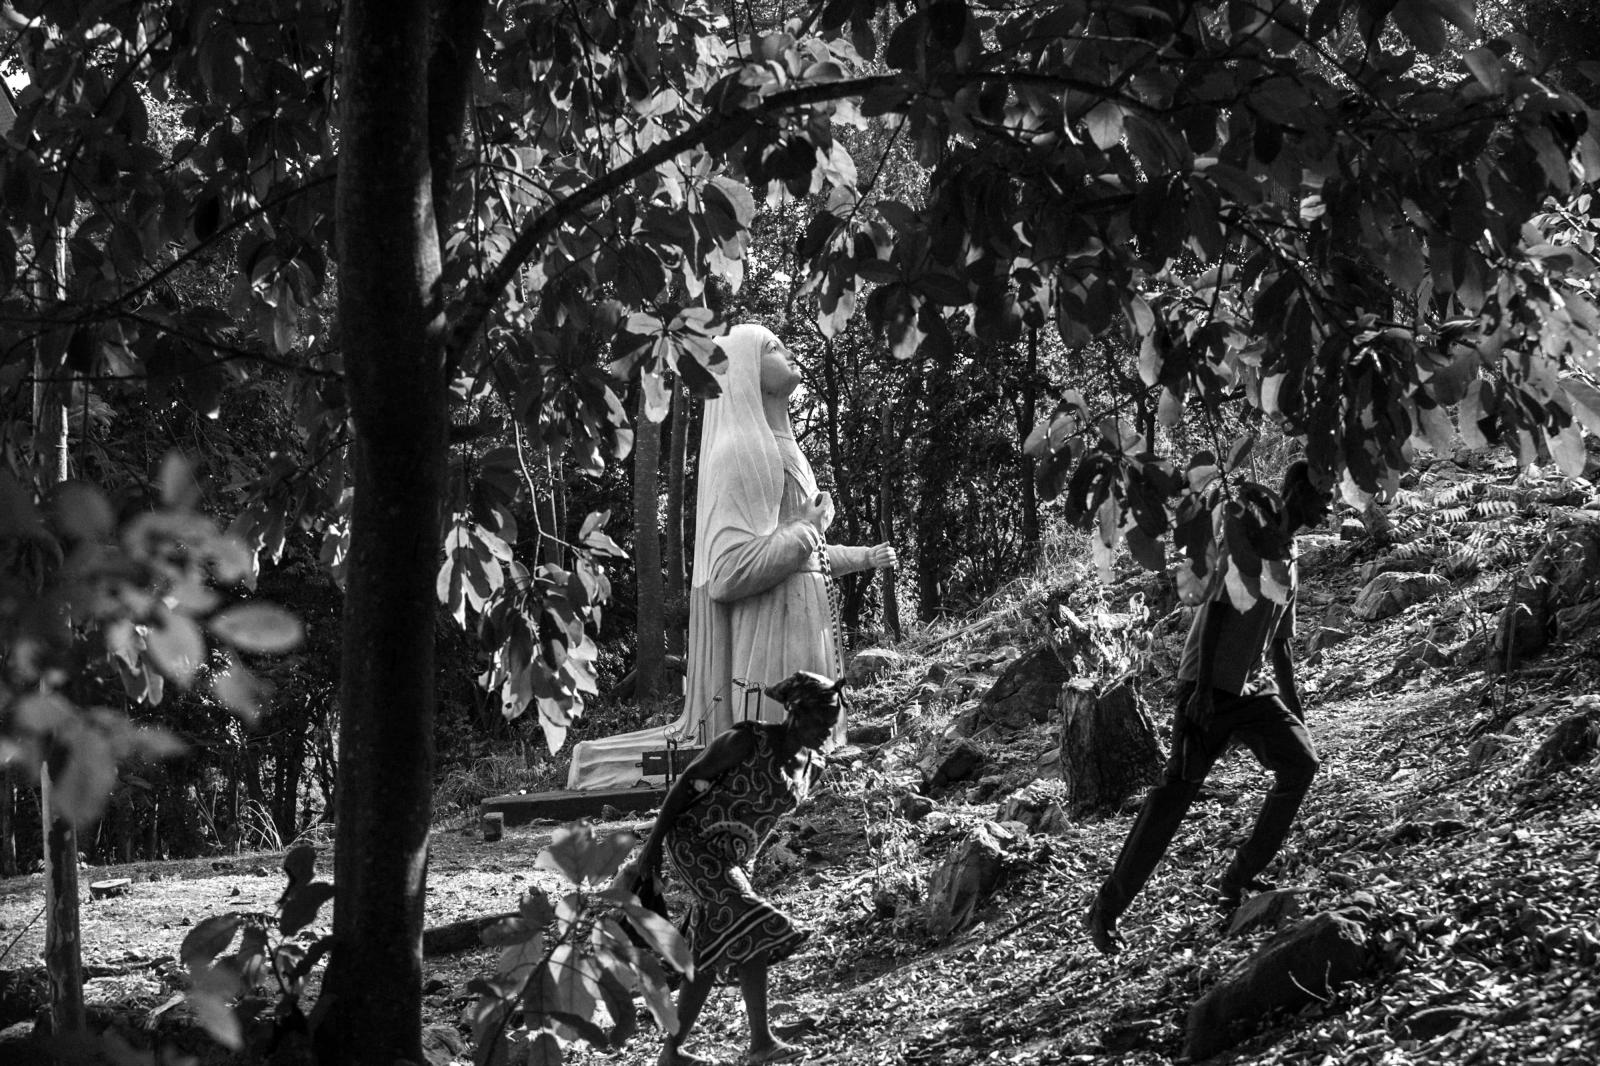 Pilgrims climb a hill to the statue of Maria, mother of Jesus, the centerpiece of worship at the Our Lady of Lourdes grotto.